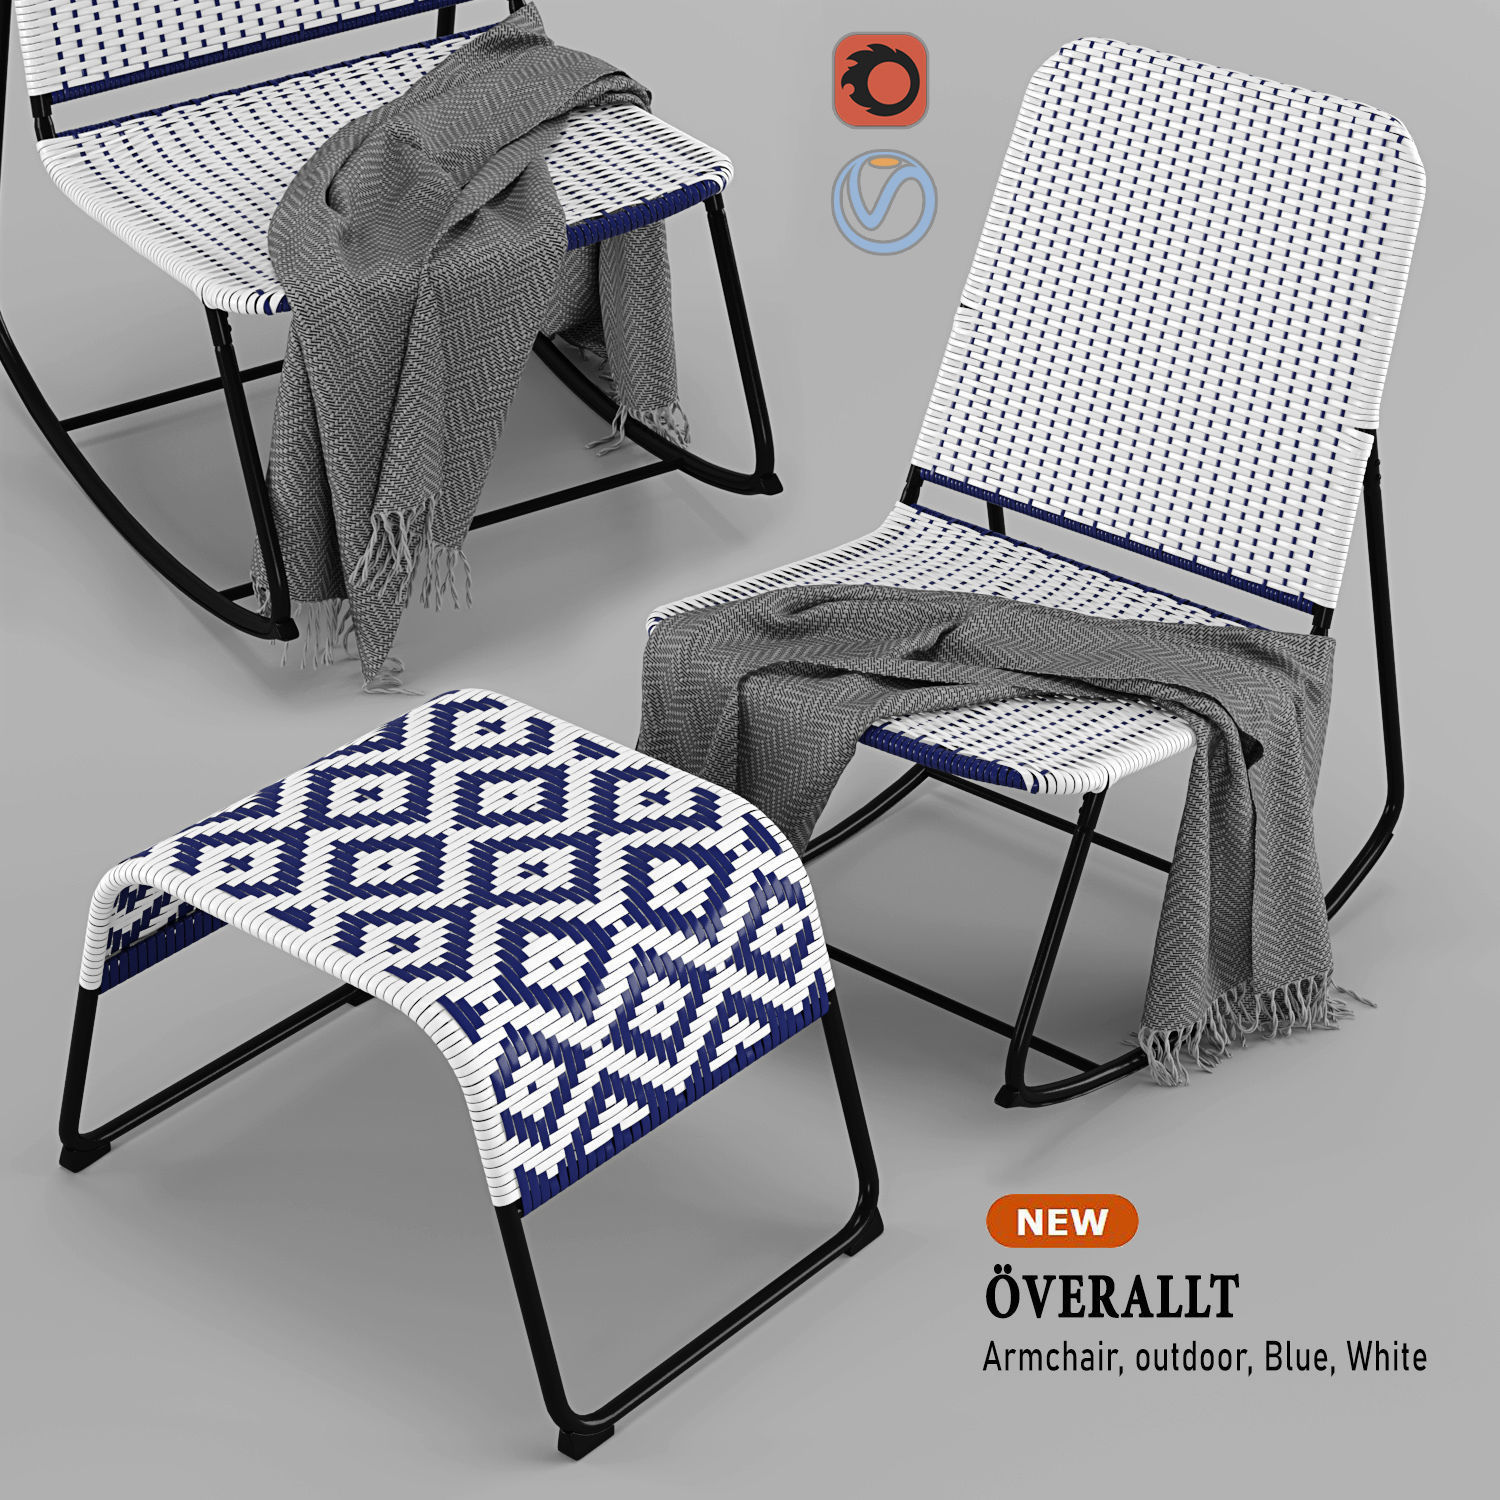 Ikea Armchair Overallt Chair Outdoor Furniture 3d